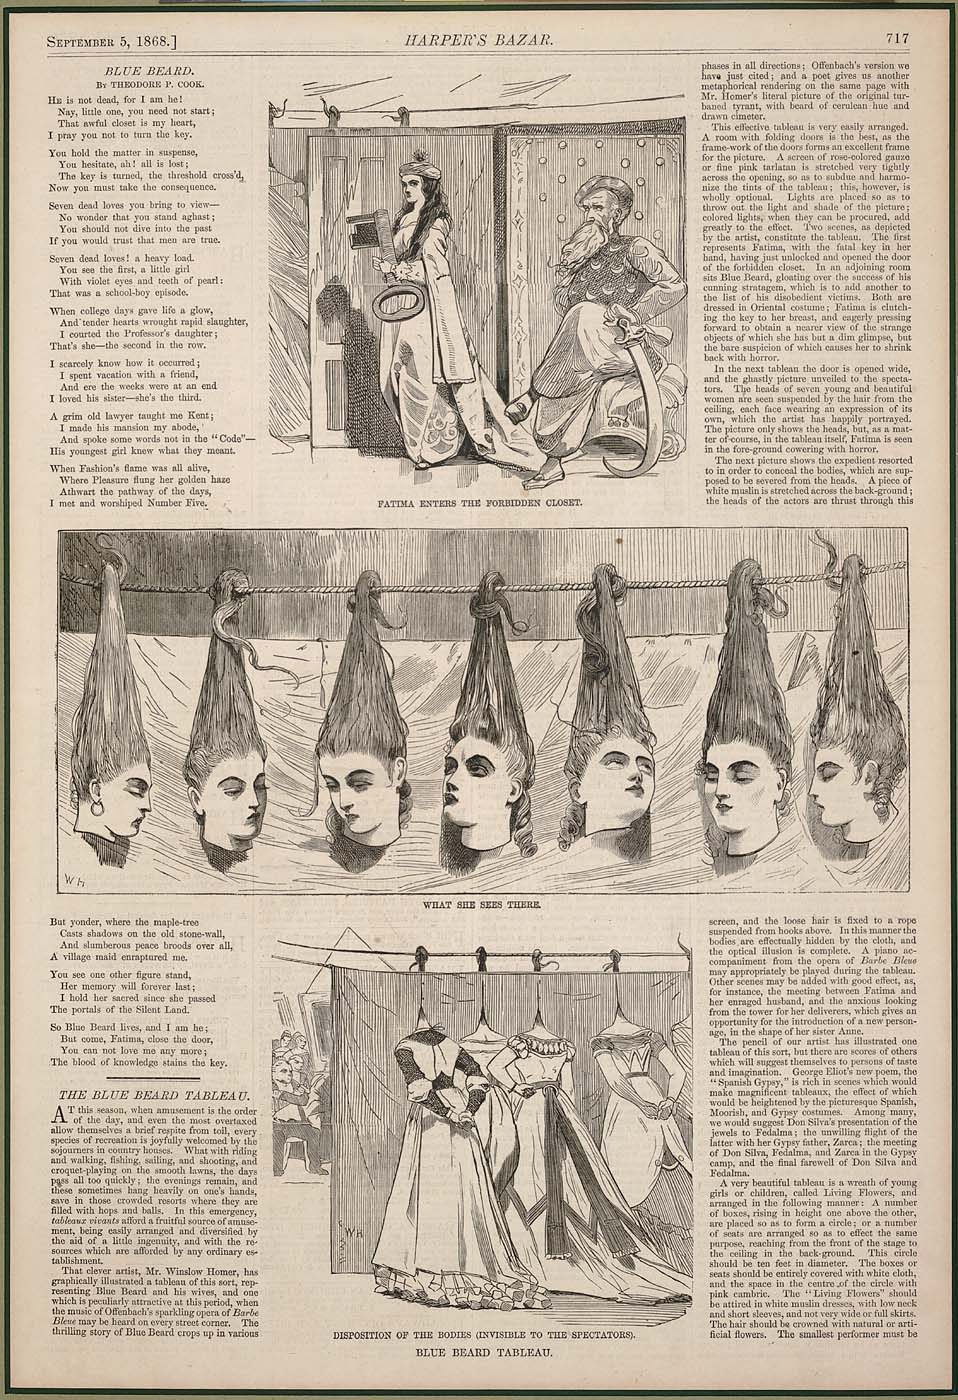 1868 Harper's magazine article w/ illustrations by Winslow Homer.